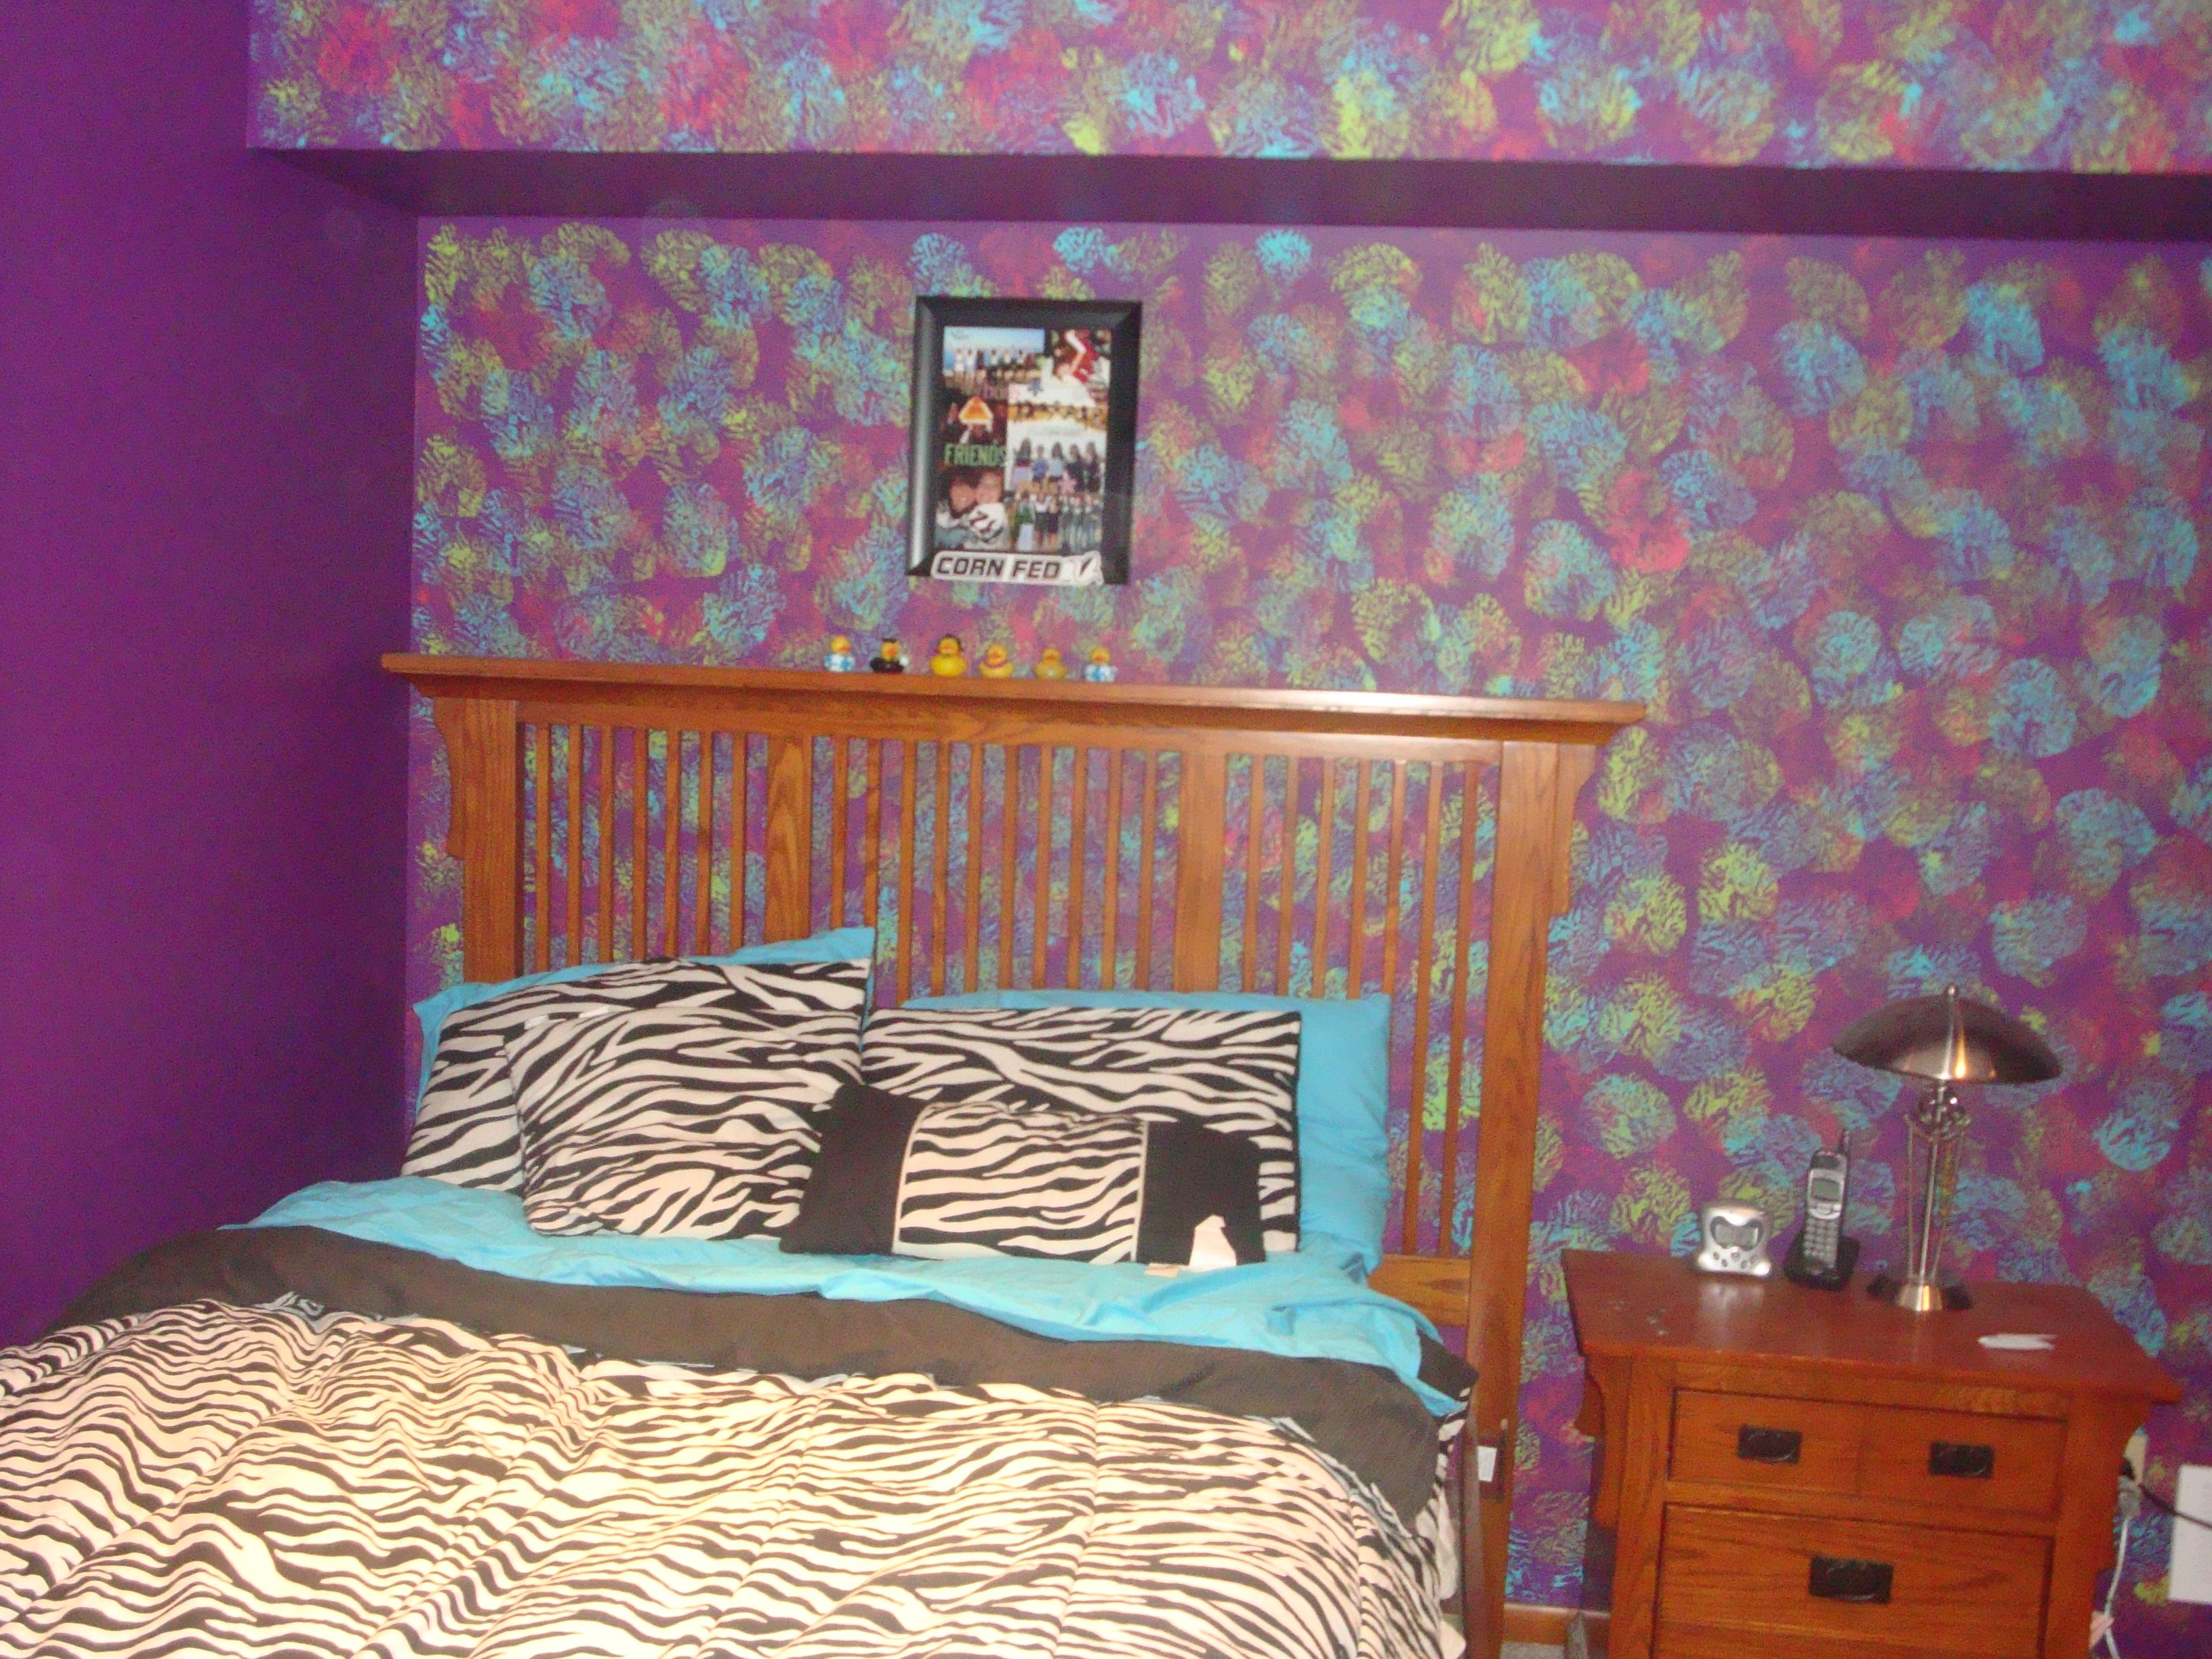 This Is My Legit Bedroom I Painted The Wall Purple First